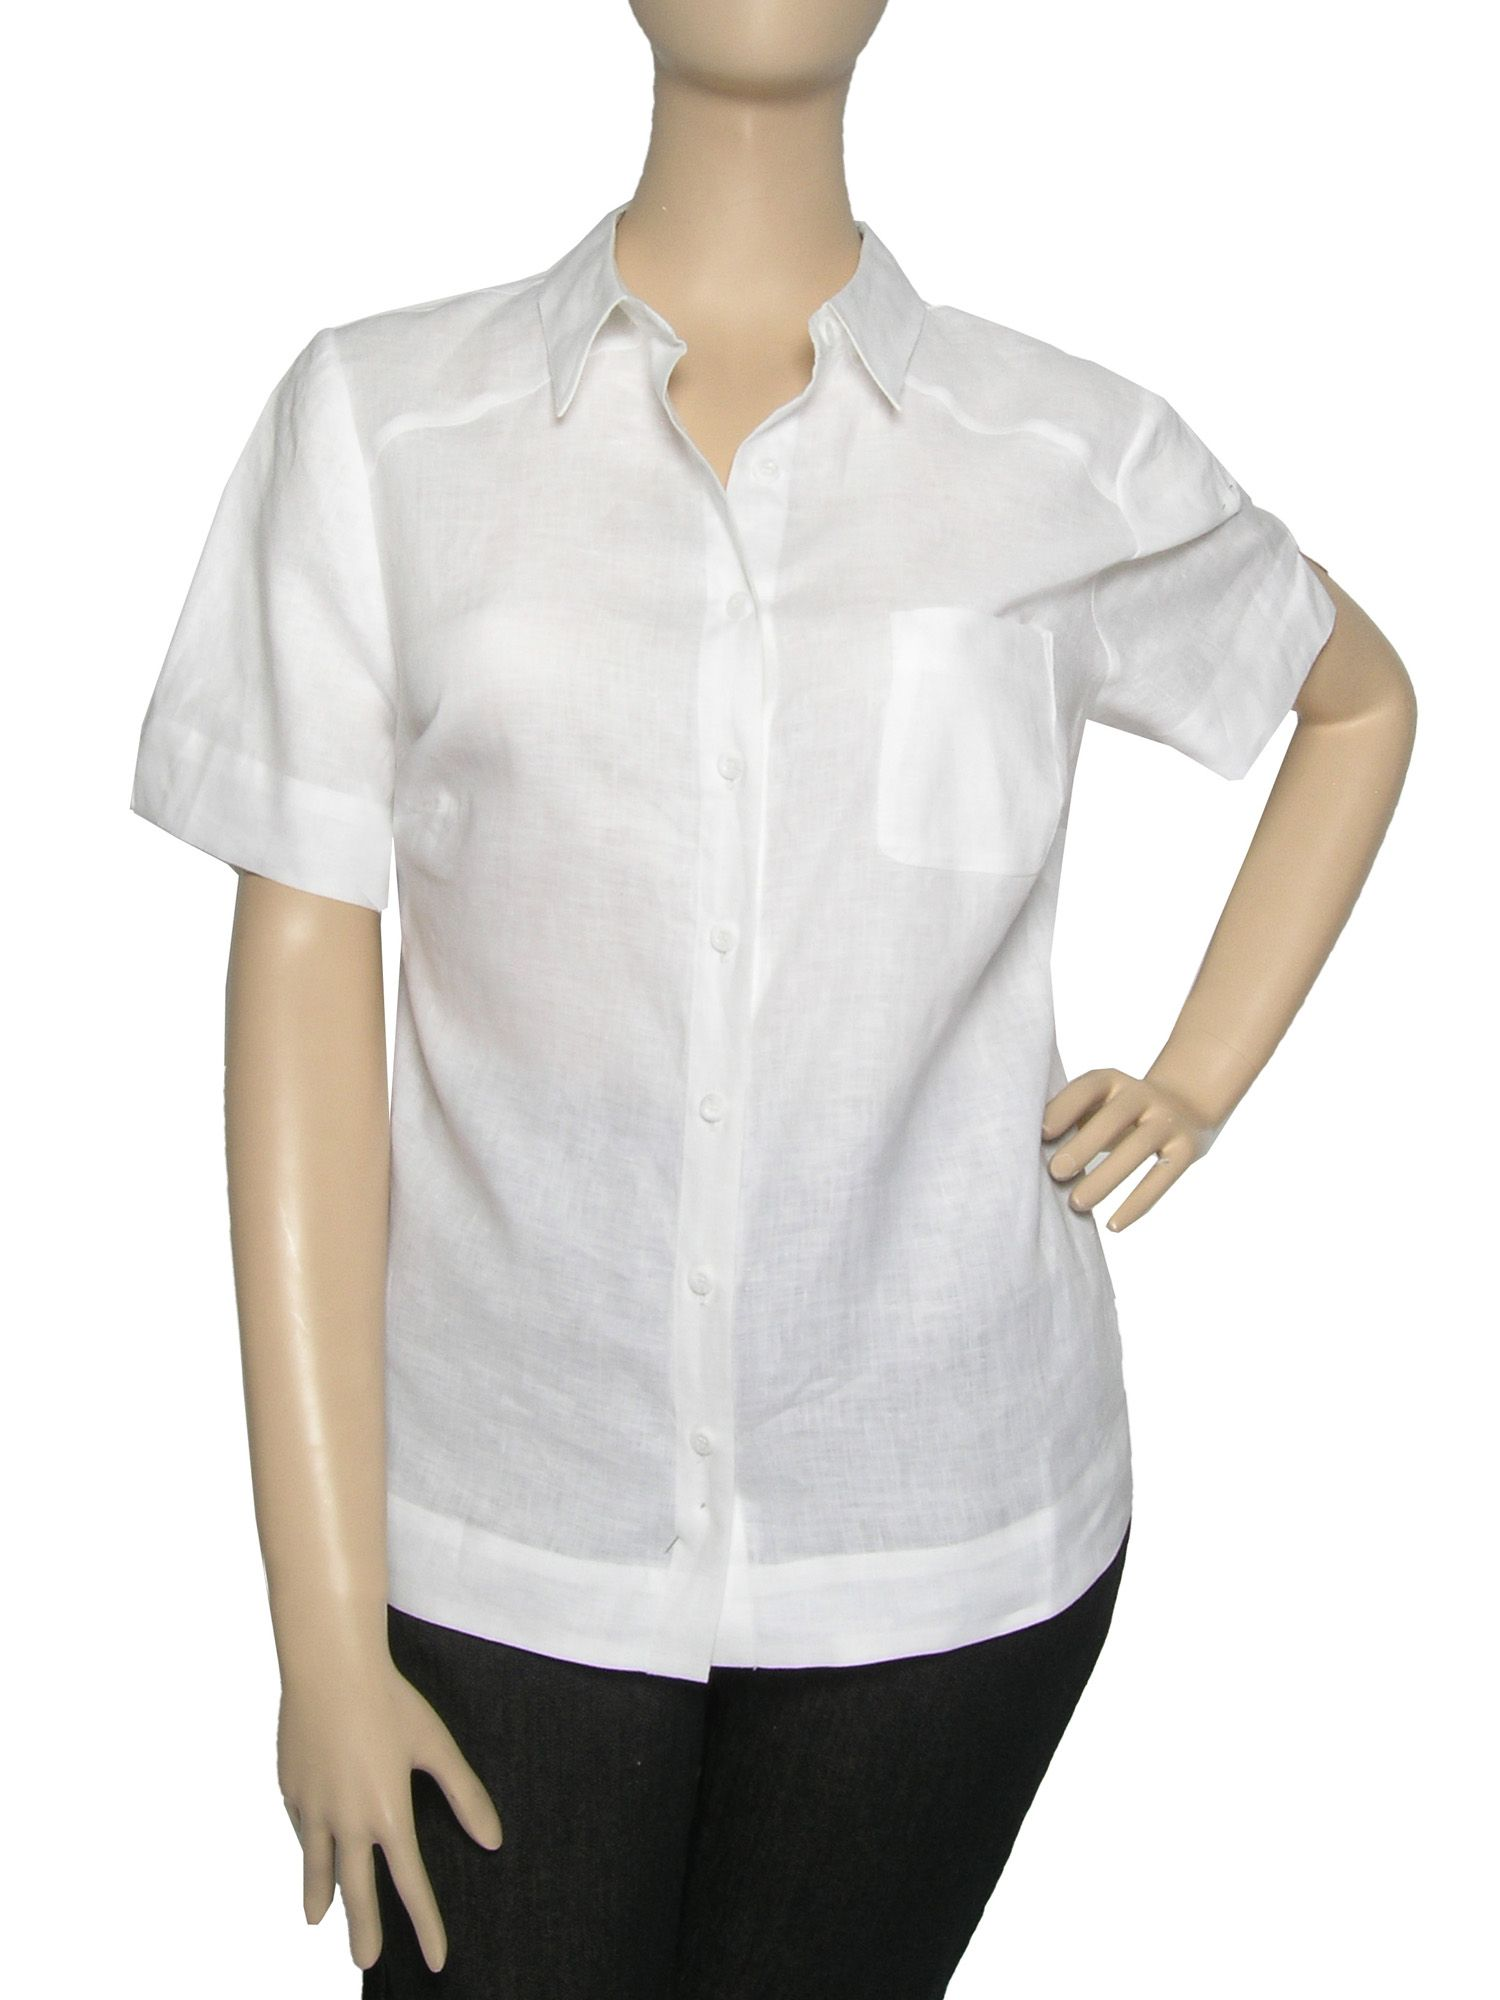 Ann Harvey Short sleeve linen blouse - White 22,22,16,16 product image